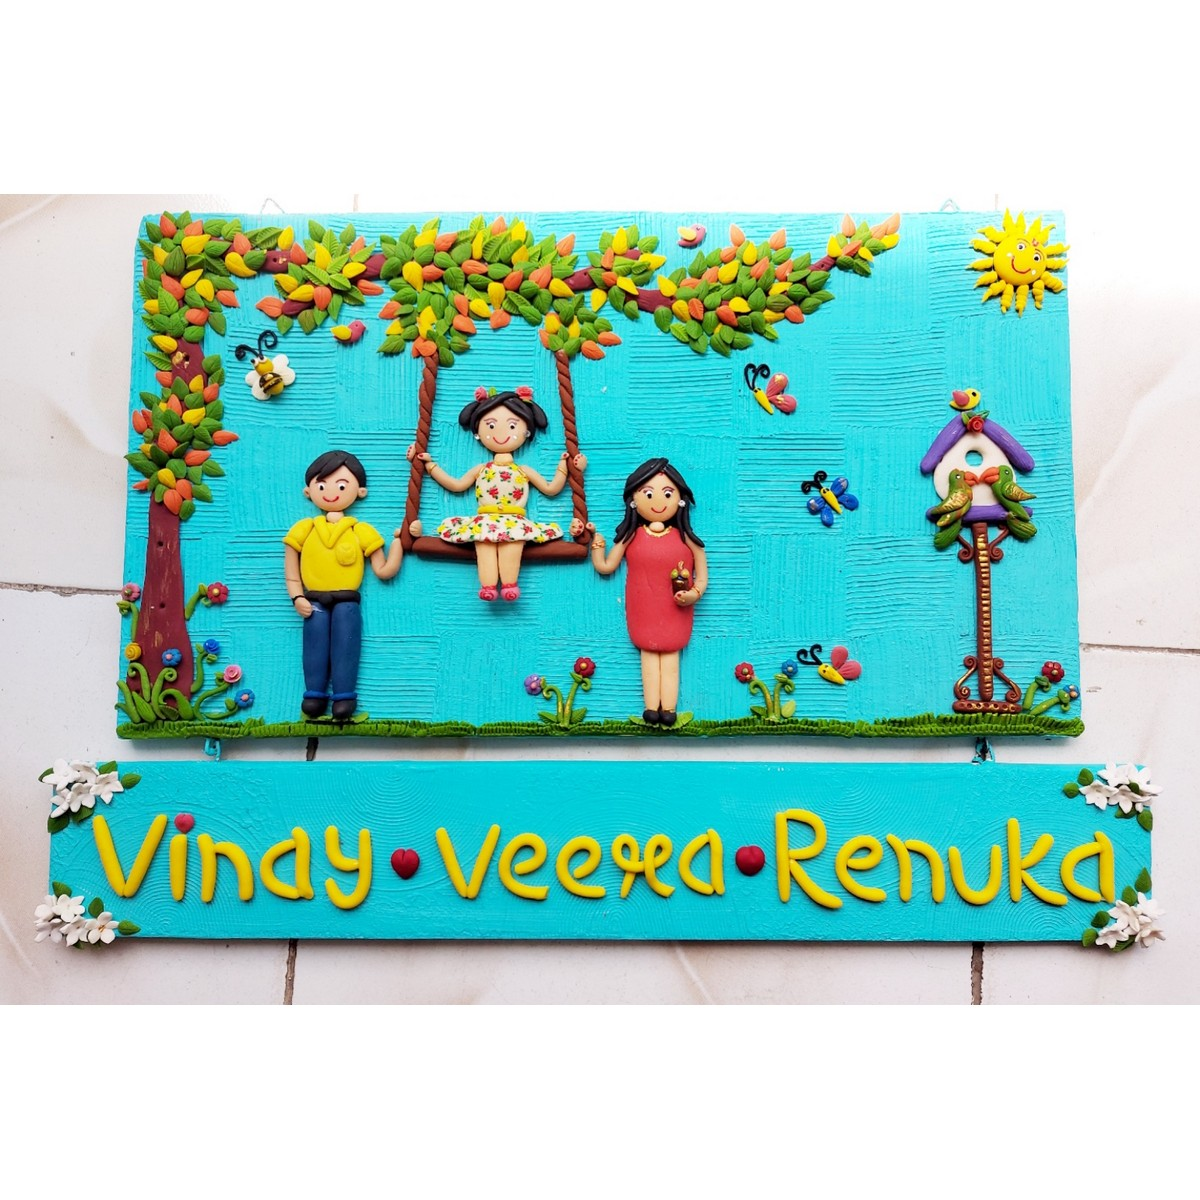 Handmade Customized Family Nameplate For Your Home  Handmade customized family nameplate for your home